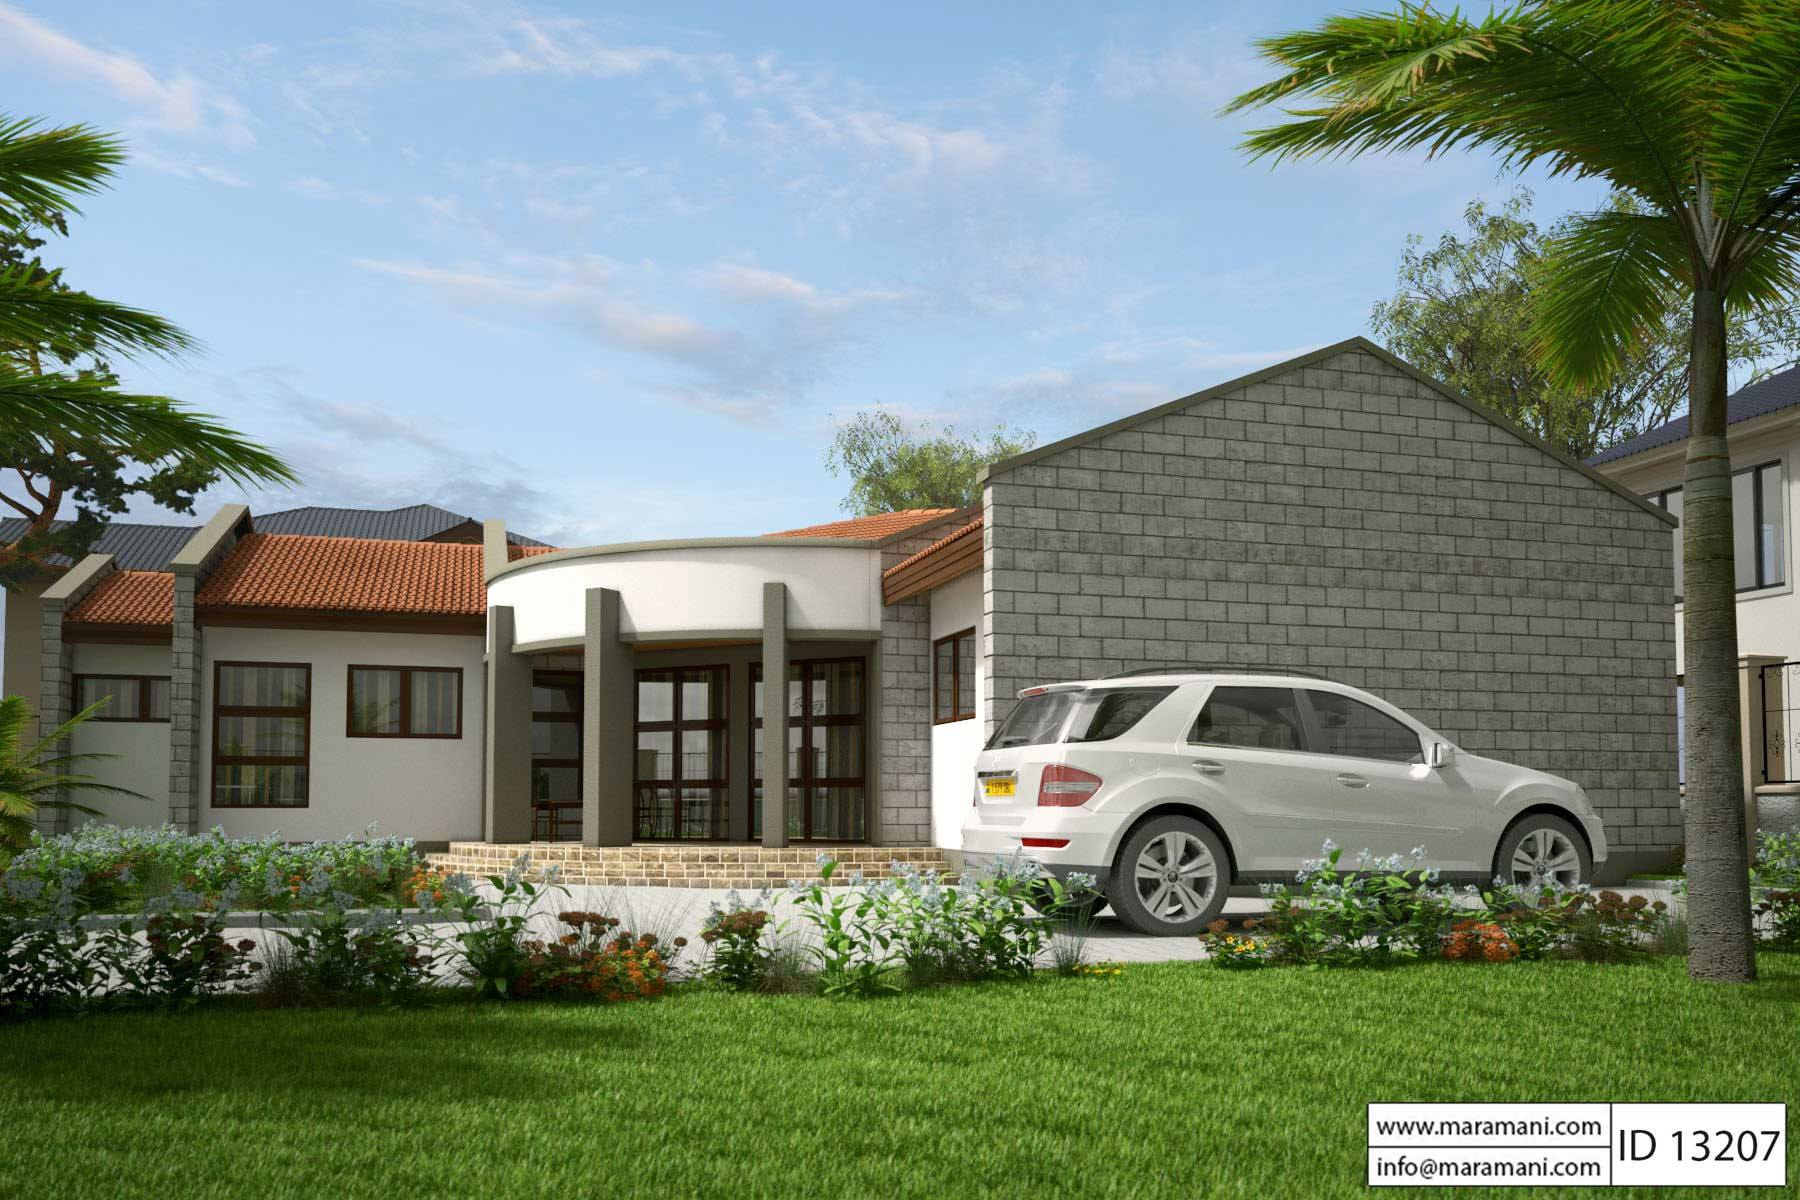 Low Budget Modern 3 Bedroom House Design - ID 13207 - Plans ...